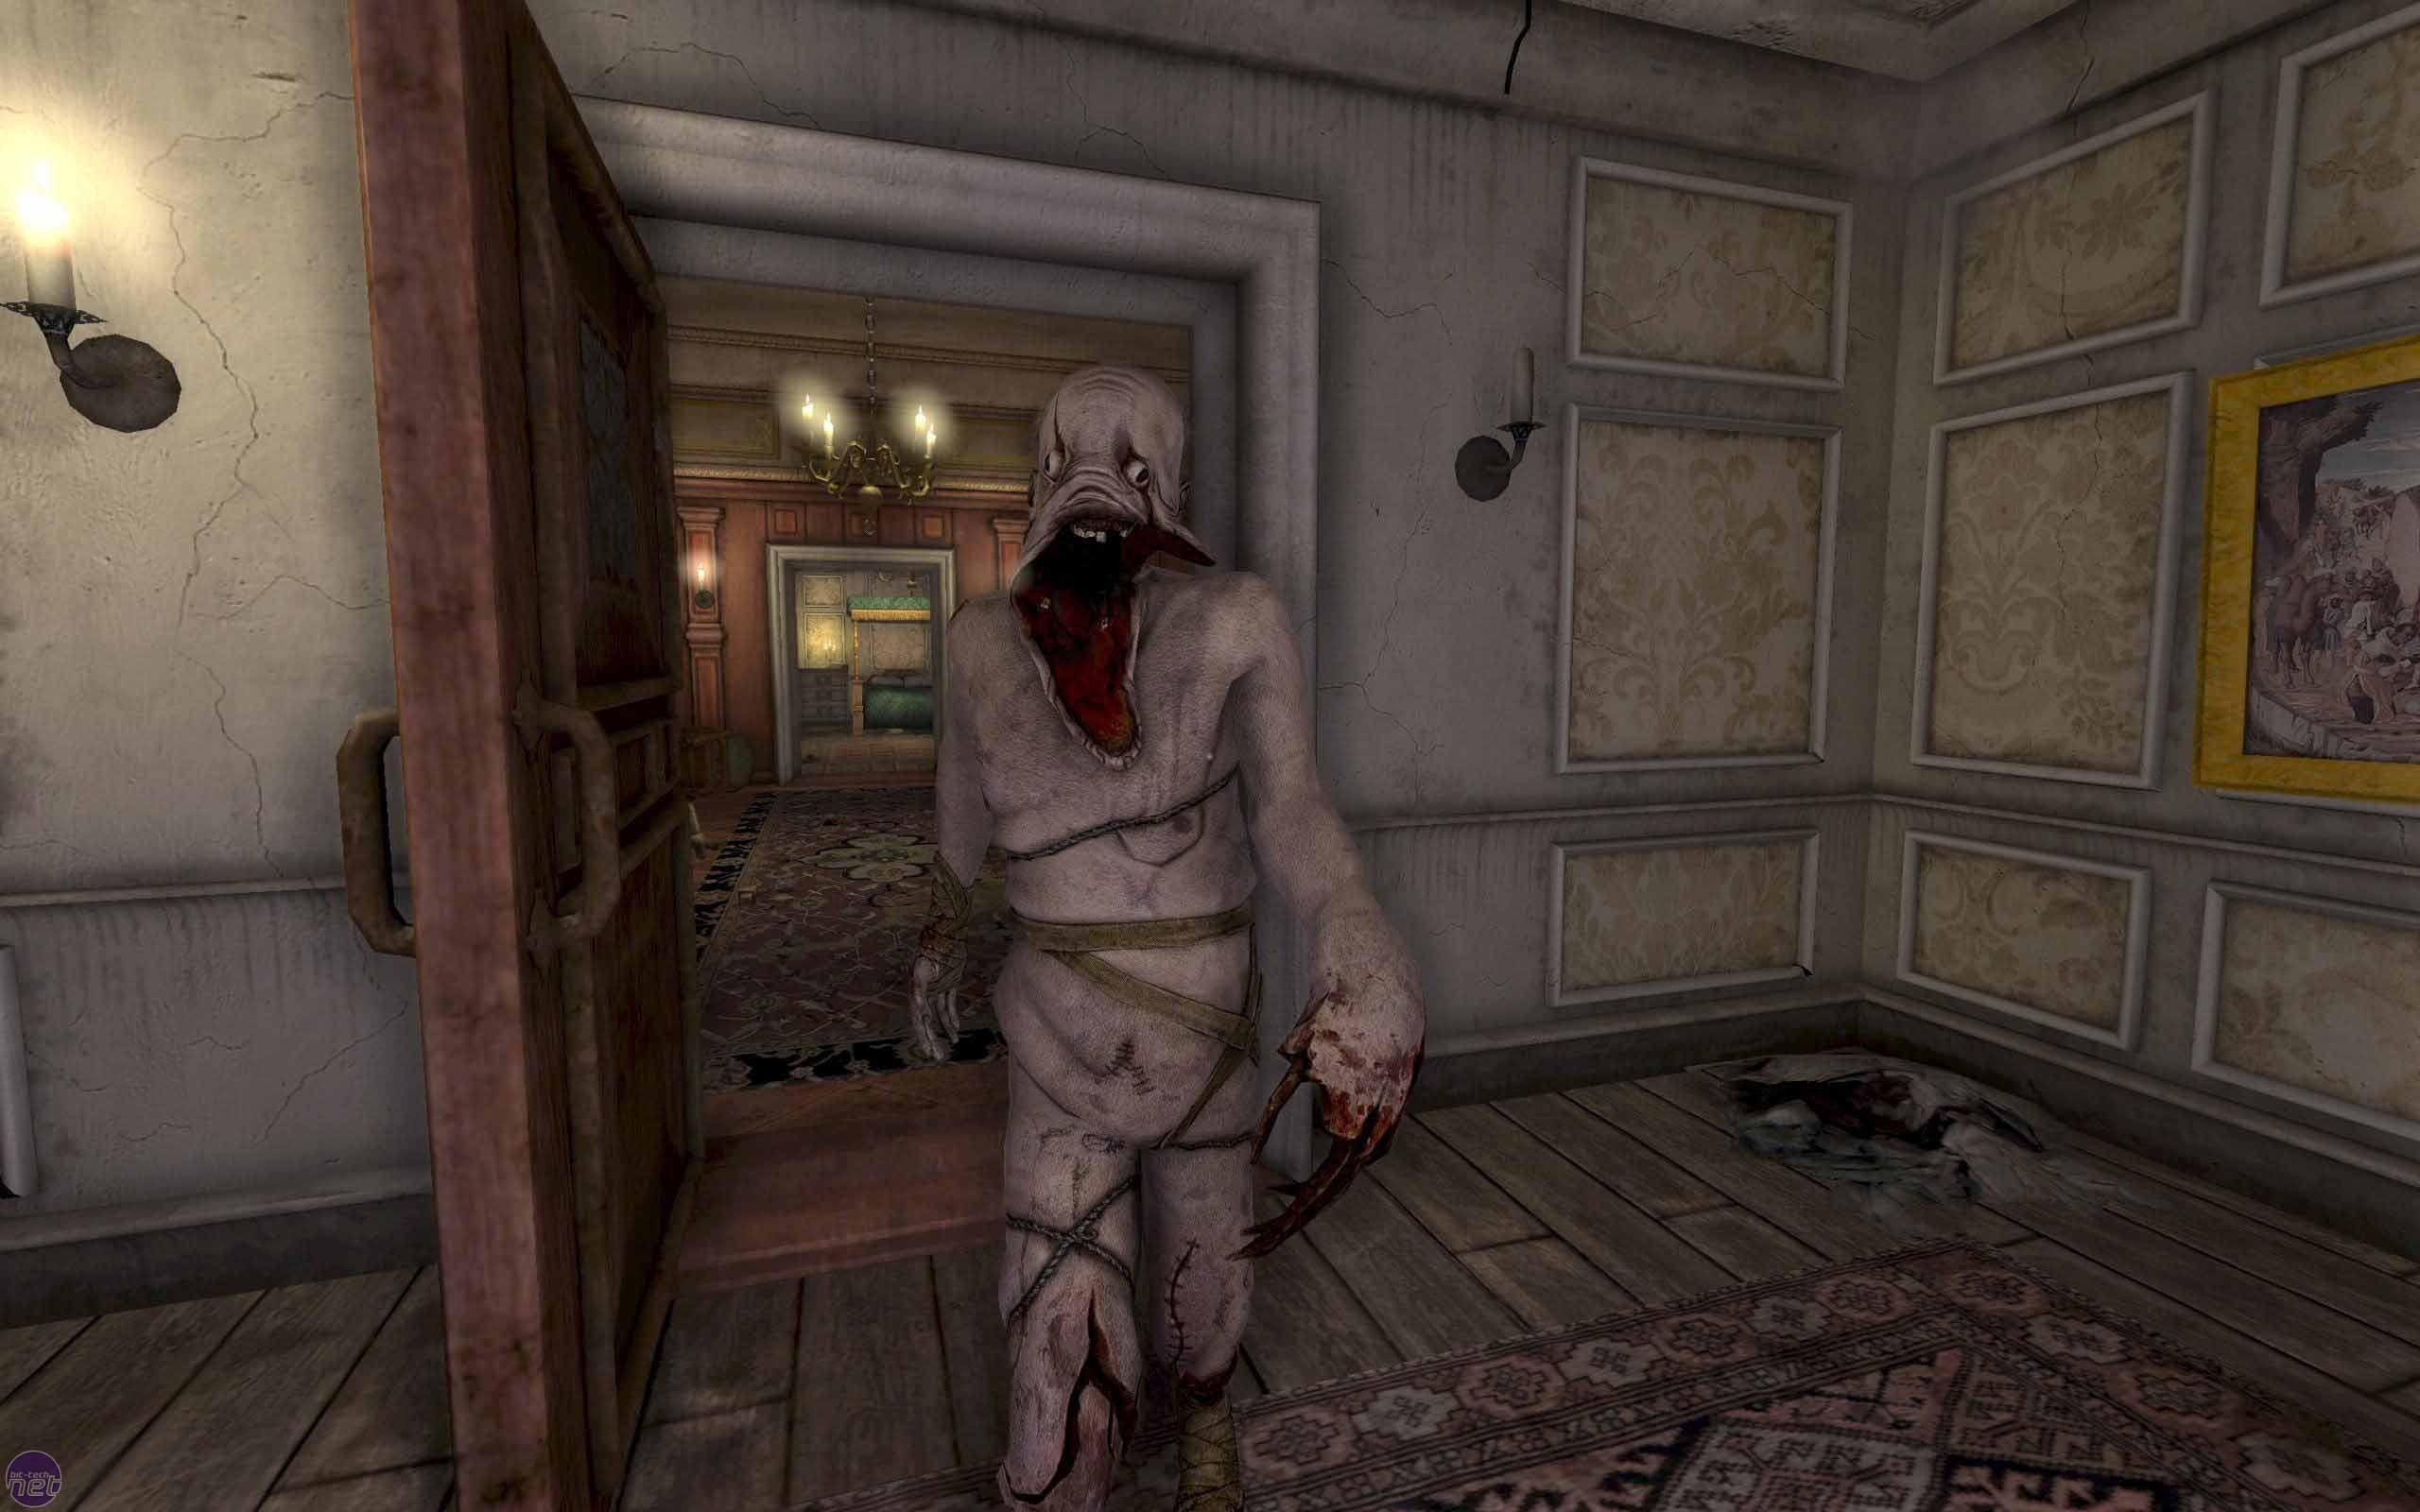 Artistry in Games Penumbra-game Scrounging For Bullets: You Can't Take Combat Out of Horror Opinion  weapons Weapon The Survivor Survive Survial Space resident Penumbra Nightmares neverending nightmares Never Isolation horror evil Ending Descent dead Dark combat Amnesia Alien 6 5 4 3 2